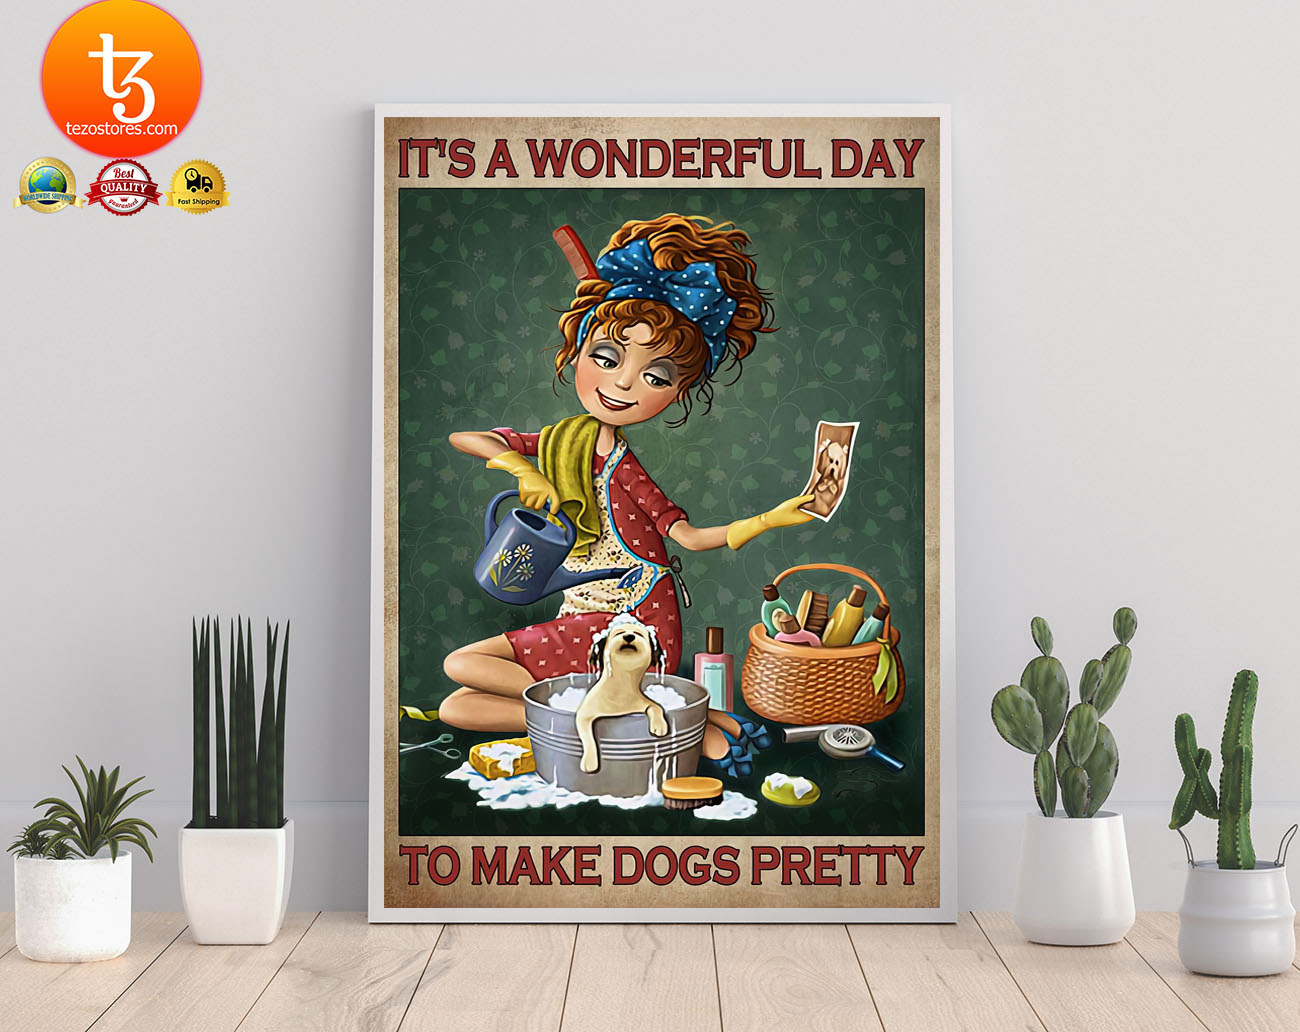 Grooming It's a wonderful day to make dogs pretty poster 21